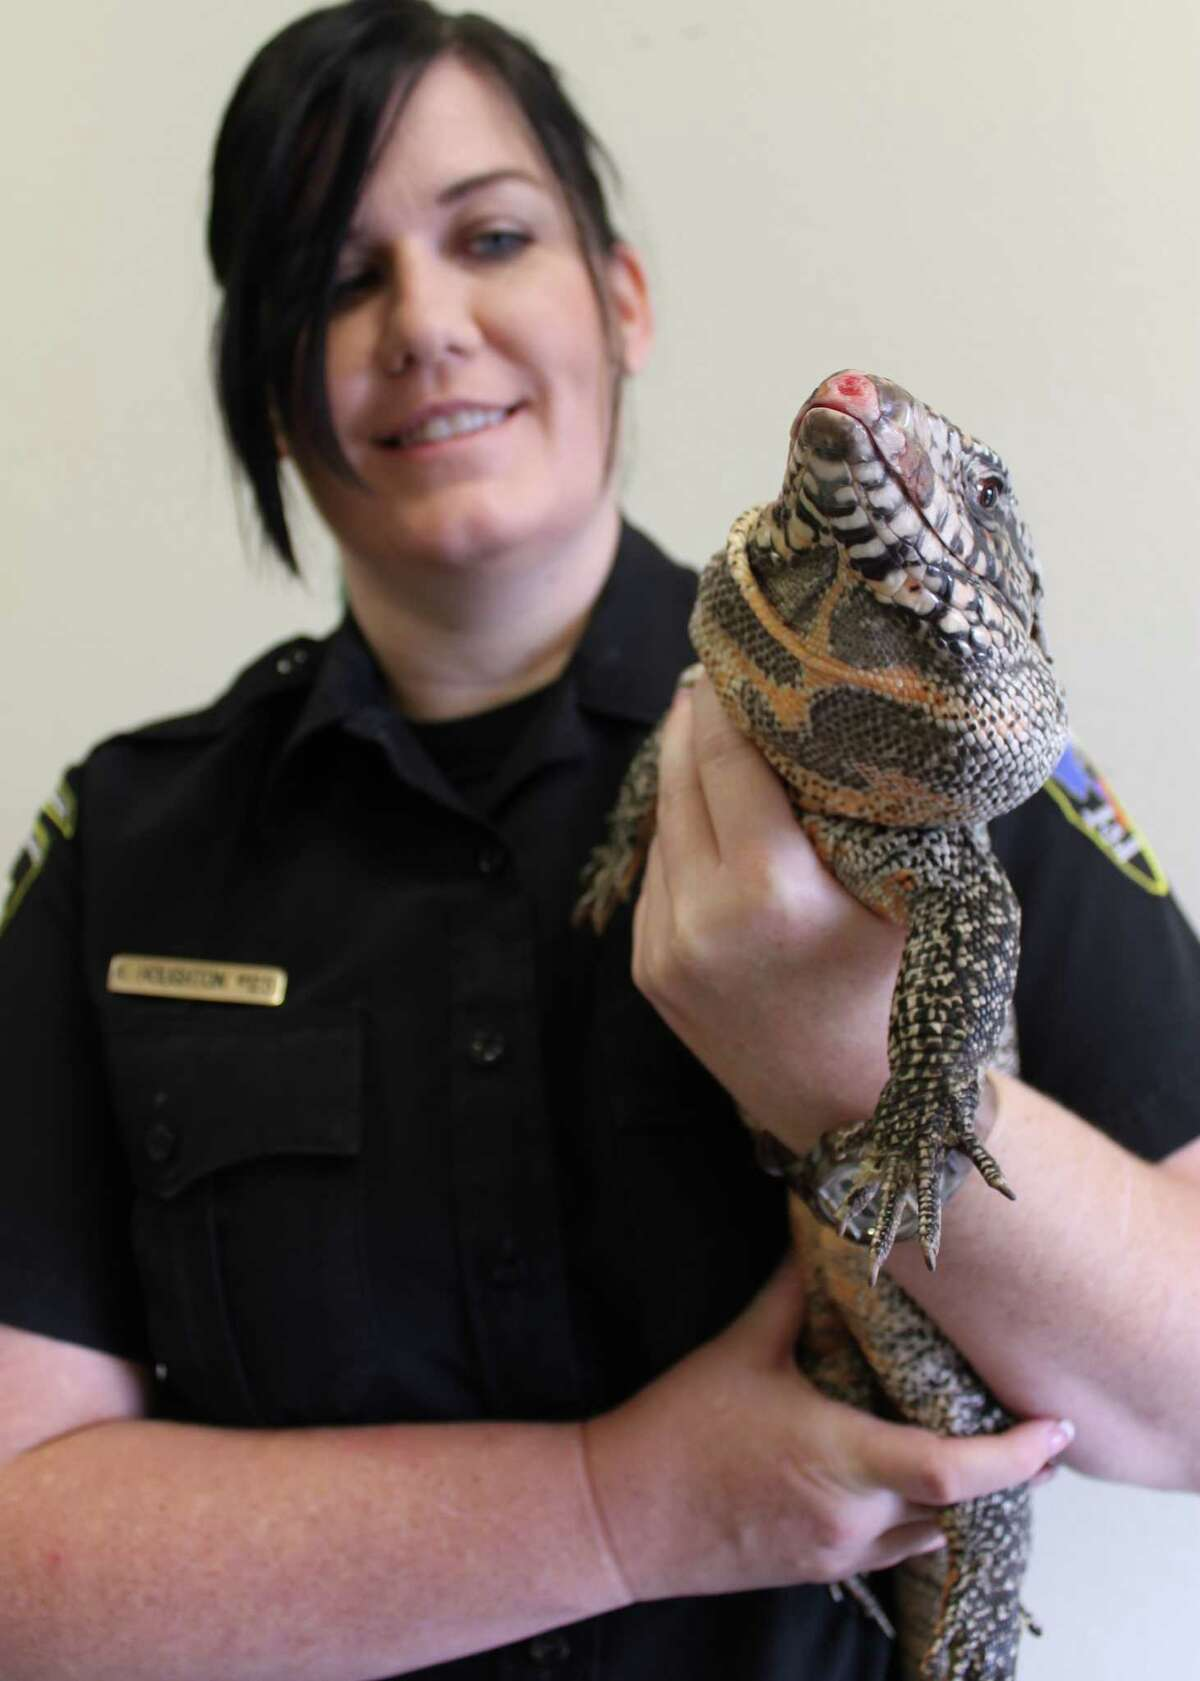 Animal Care Services field operations officer,Audra HoughtonholdsLeandro, a Tegu lizard that a resident found on the porch of his Northeast Side home.